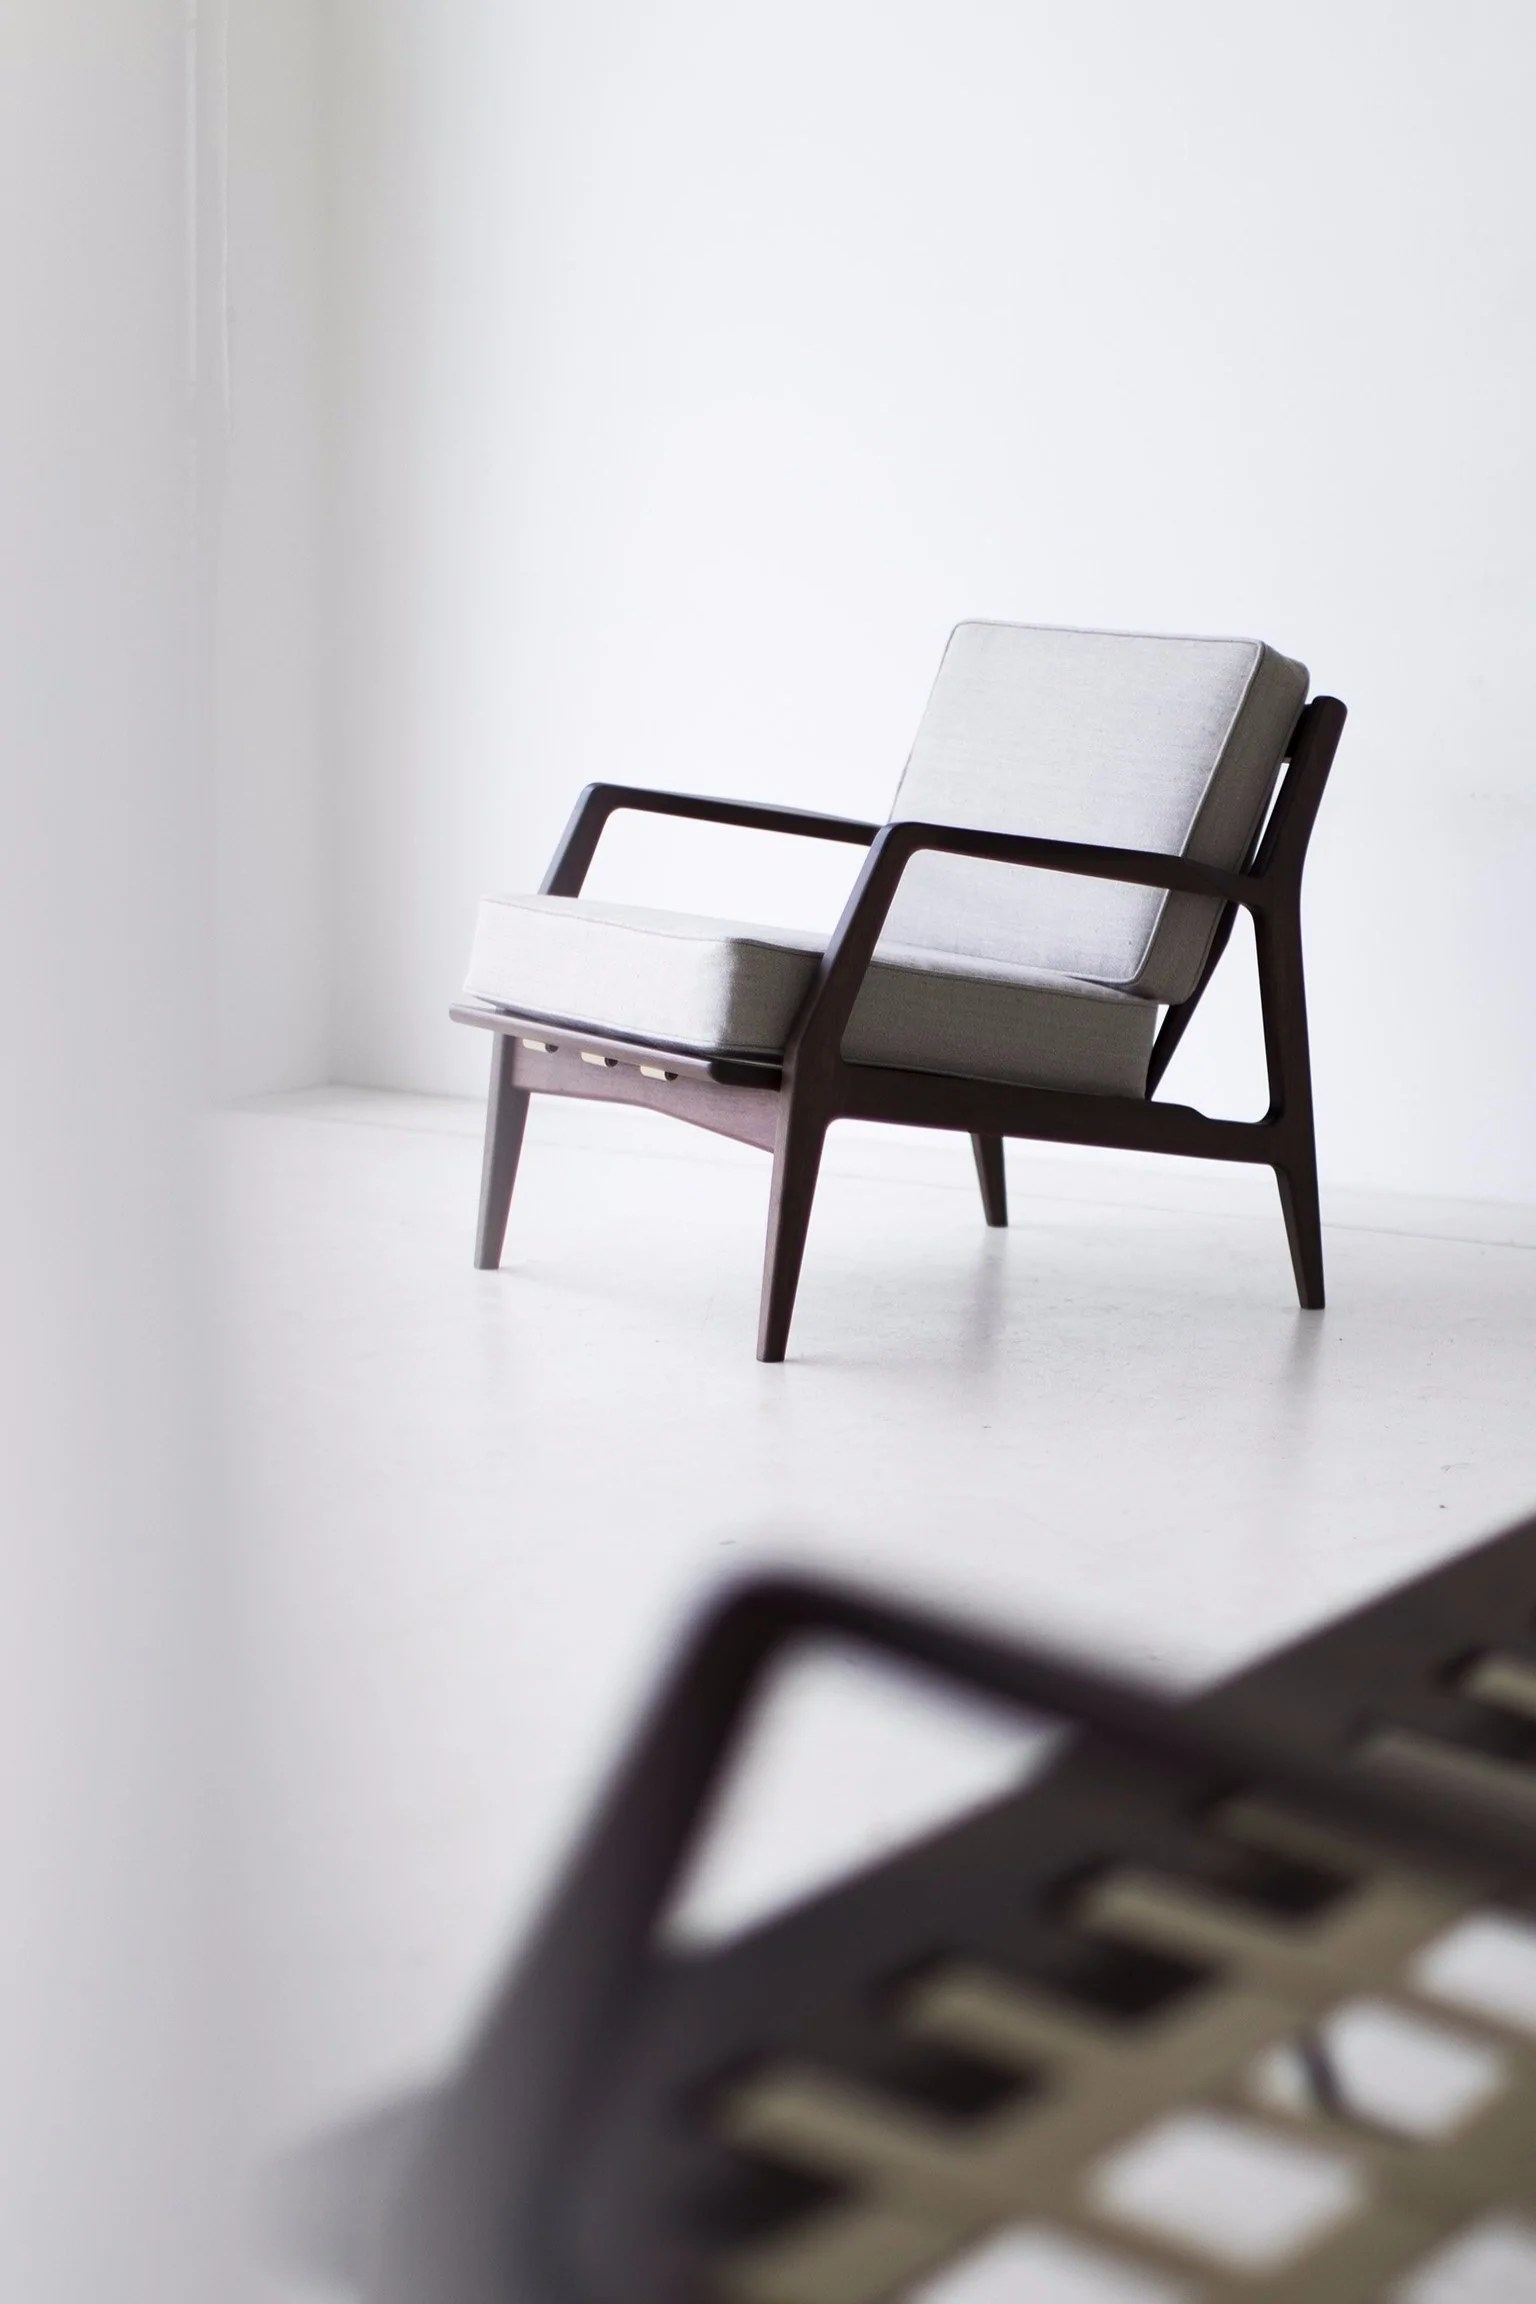 selig eames chair bistro table chairs manufacturing plycraft lounge lawrence peabody craft associates furniture